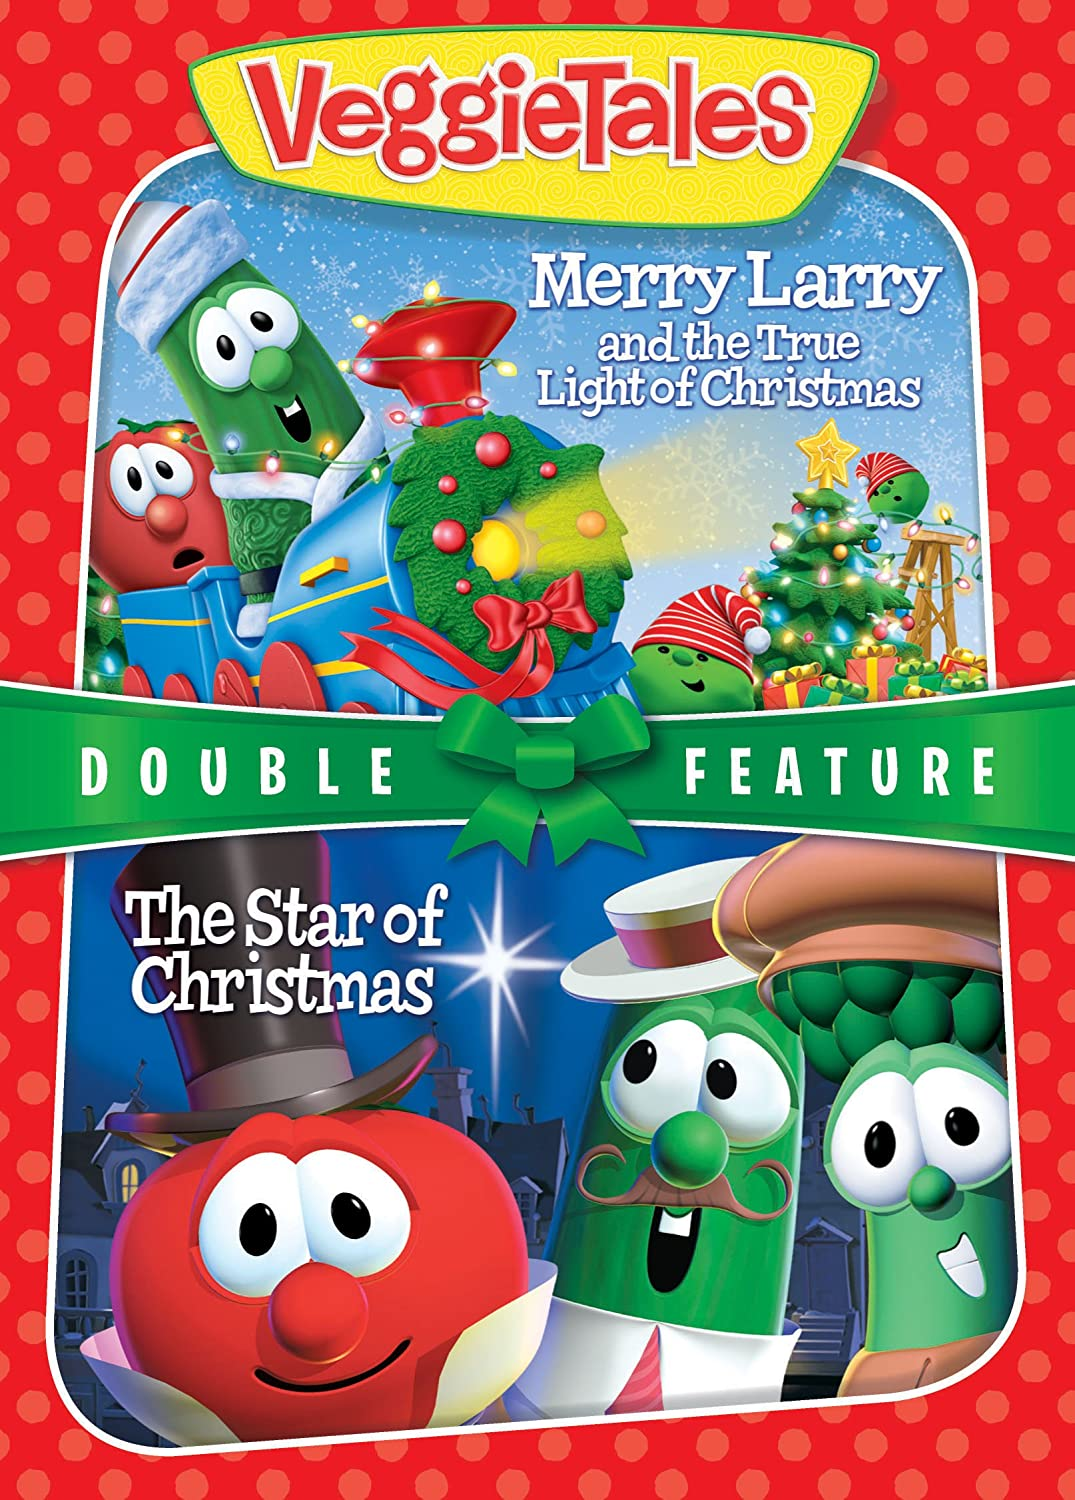 Merry Larry and The True Light of Christmas (Double Feature)